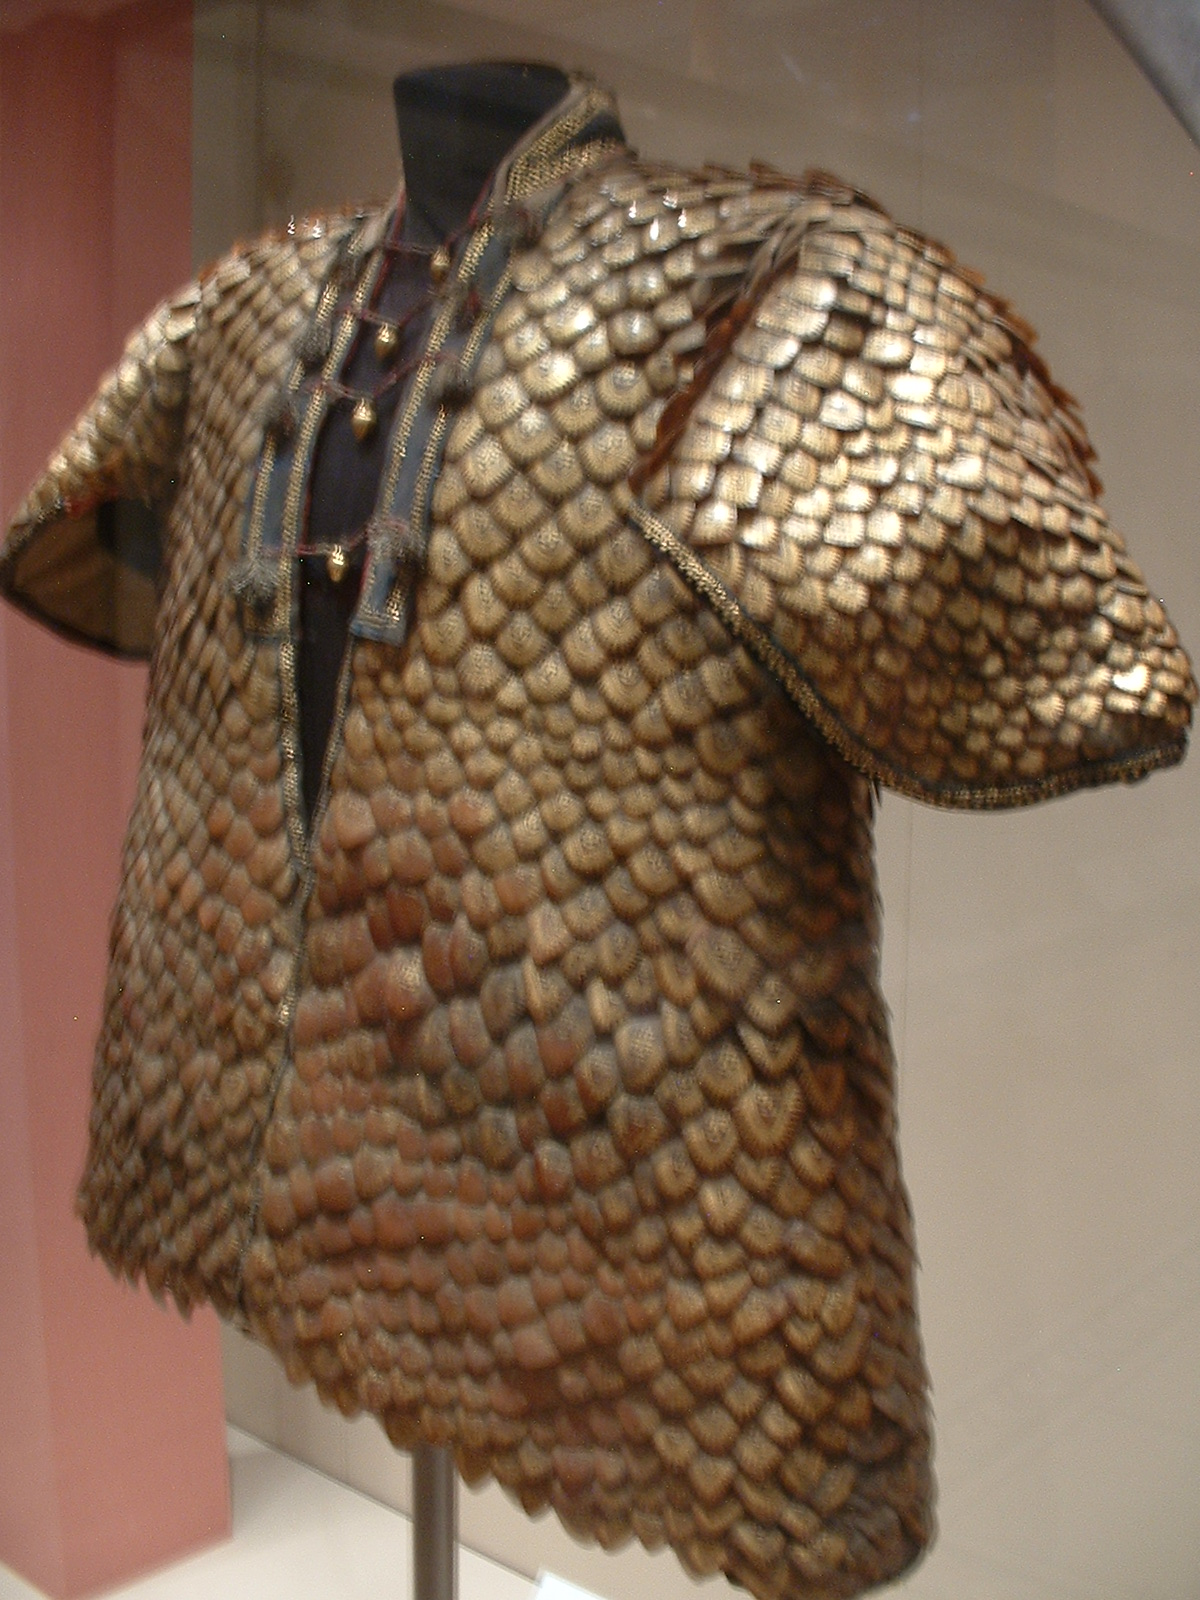 [Image: Coat_of_Pangolin_scales.JPG]